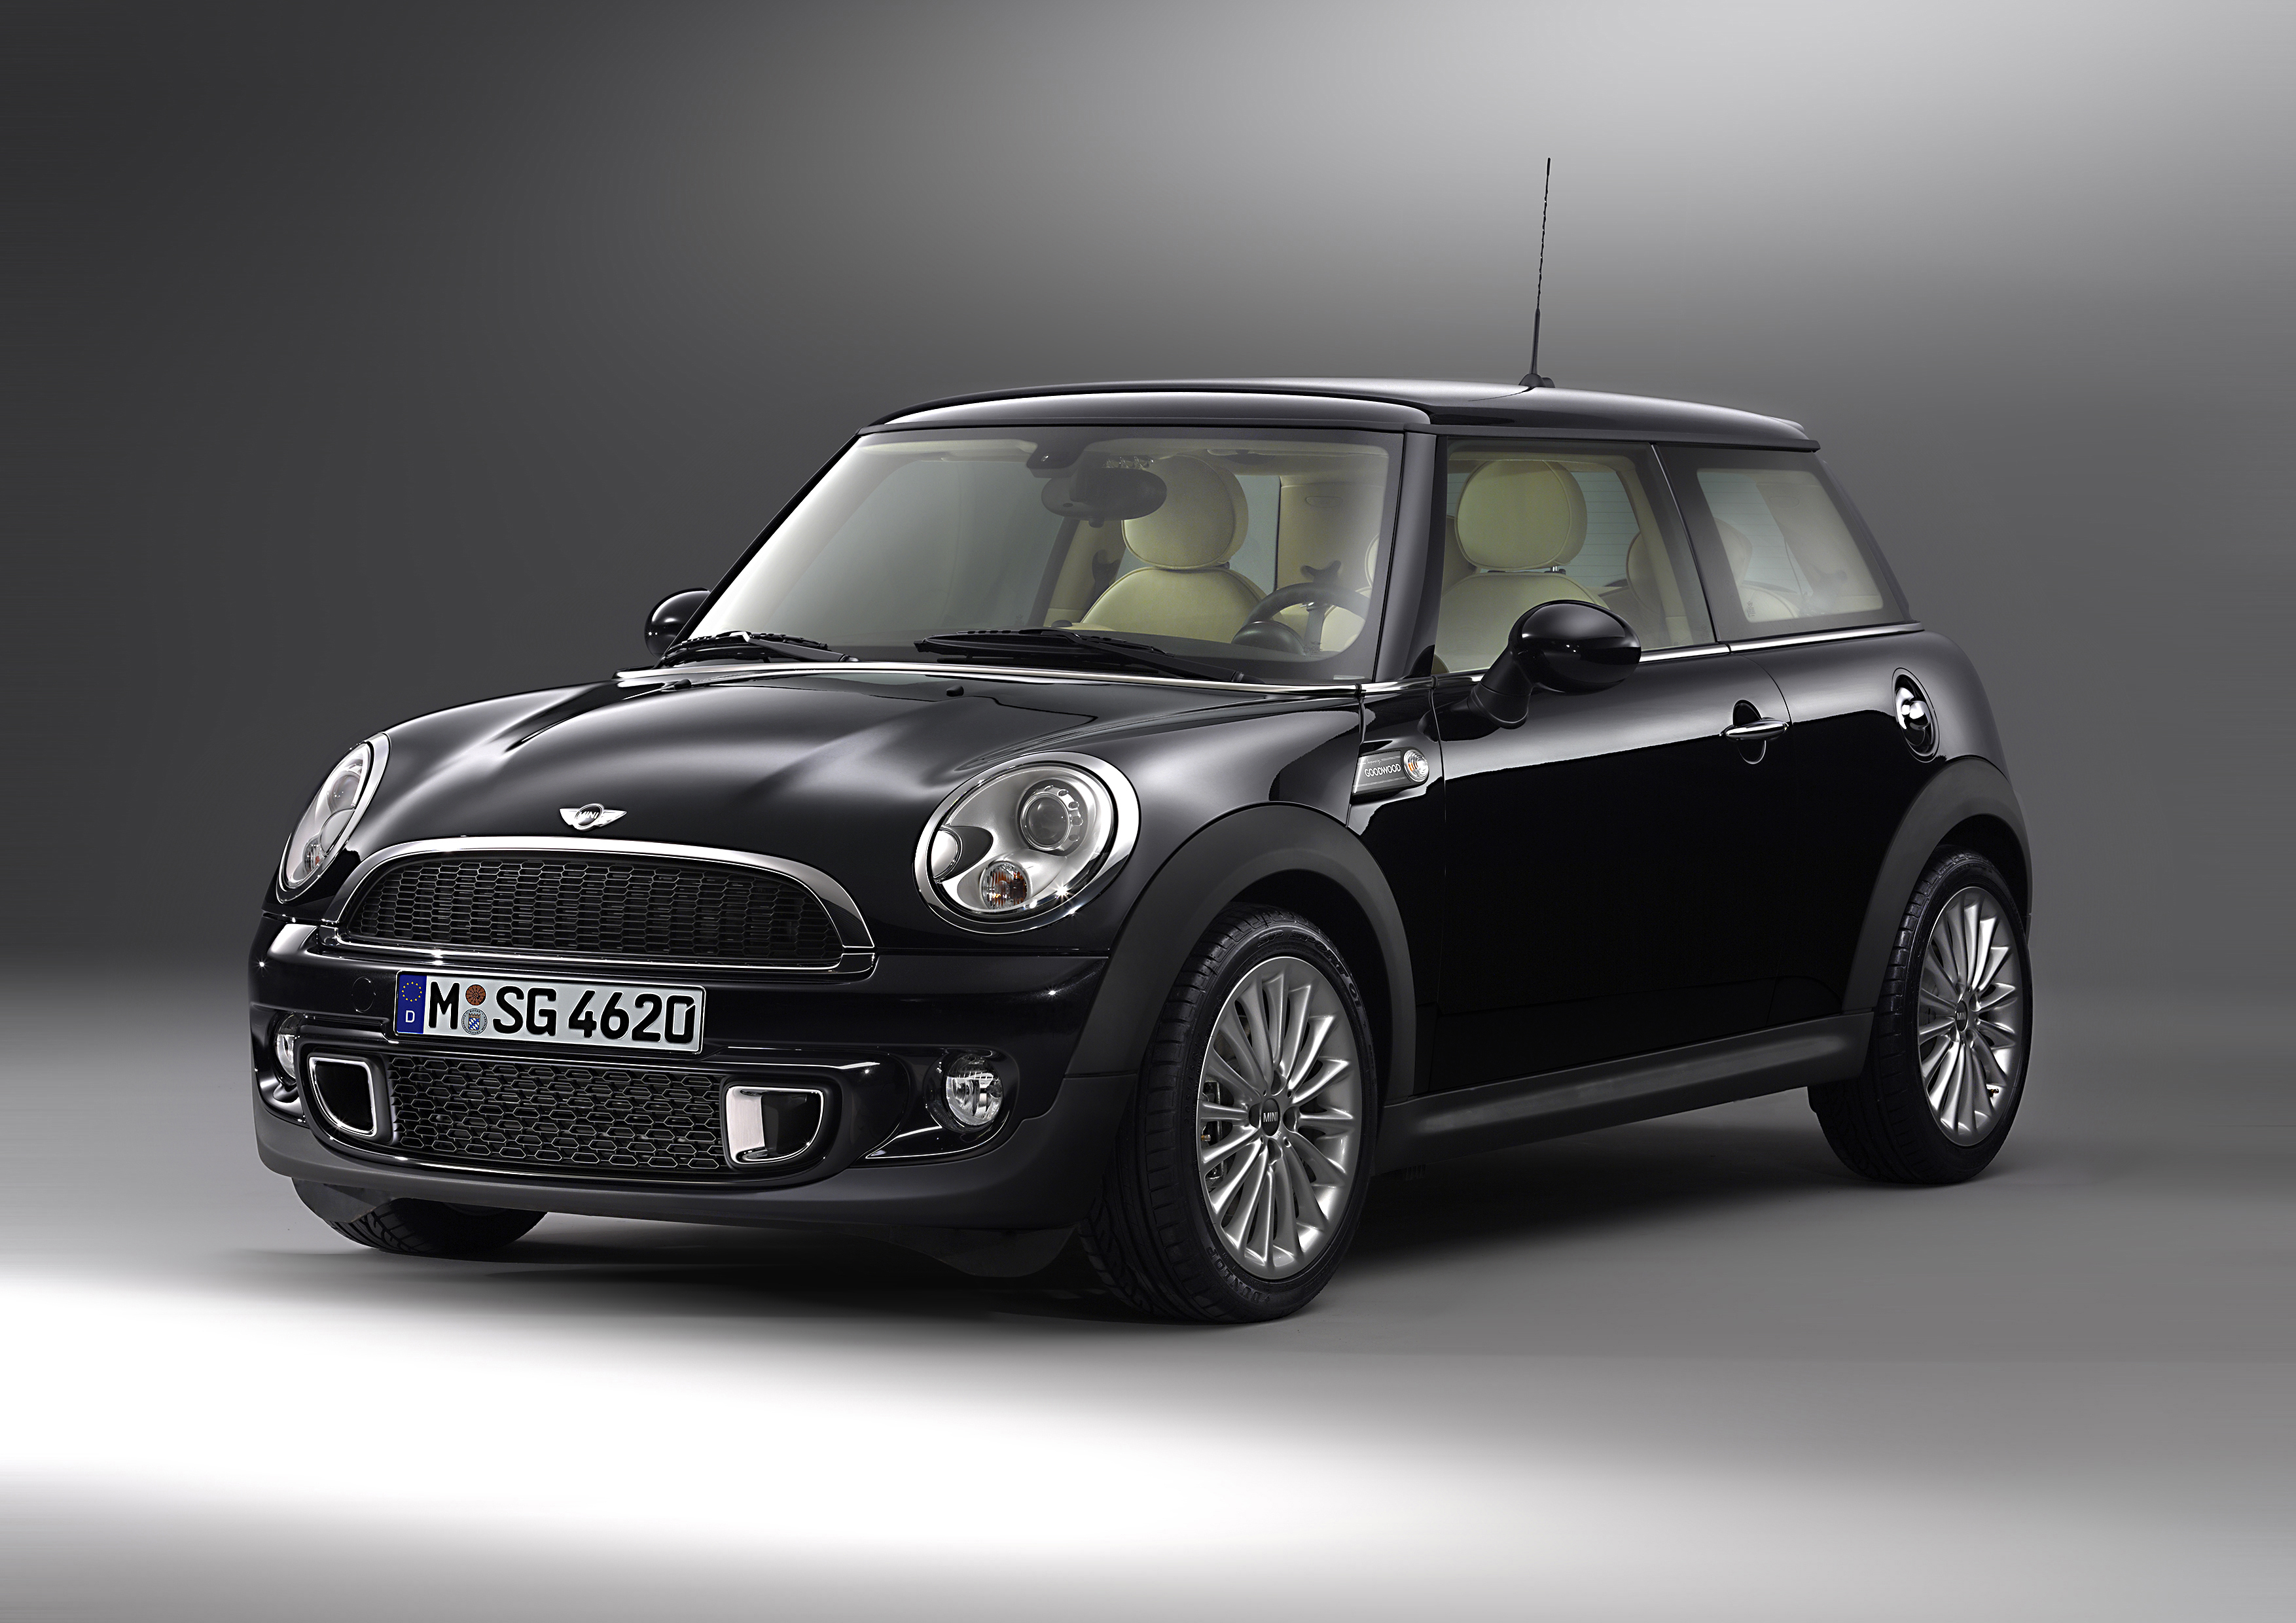 The bespoke Goodwood Edition MINI inspired by Rolls Royce